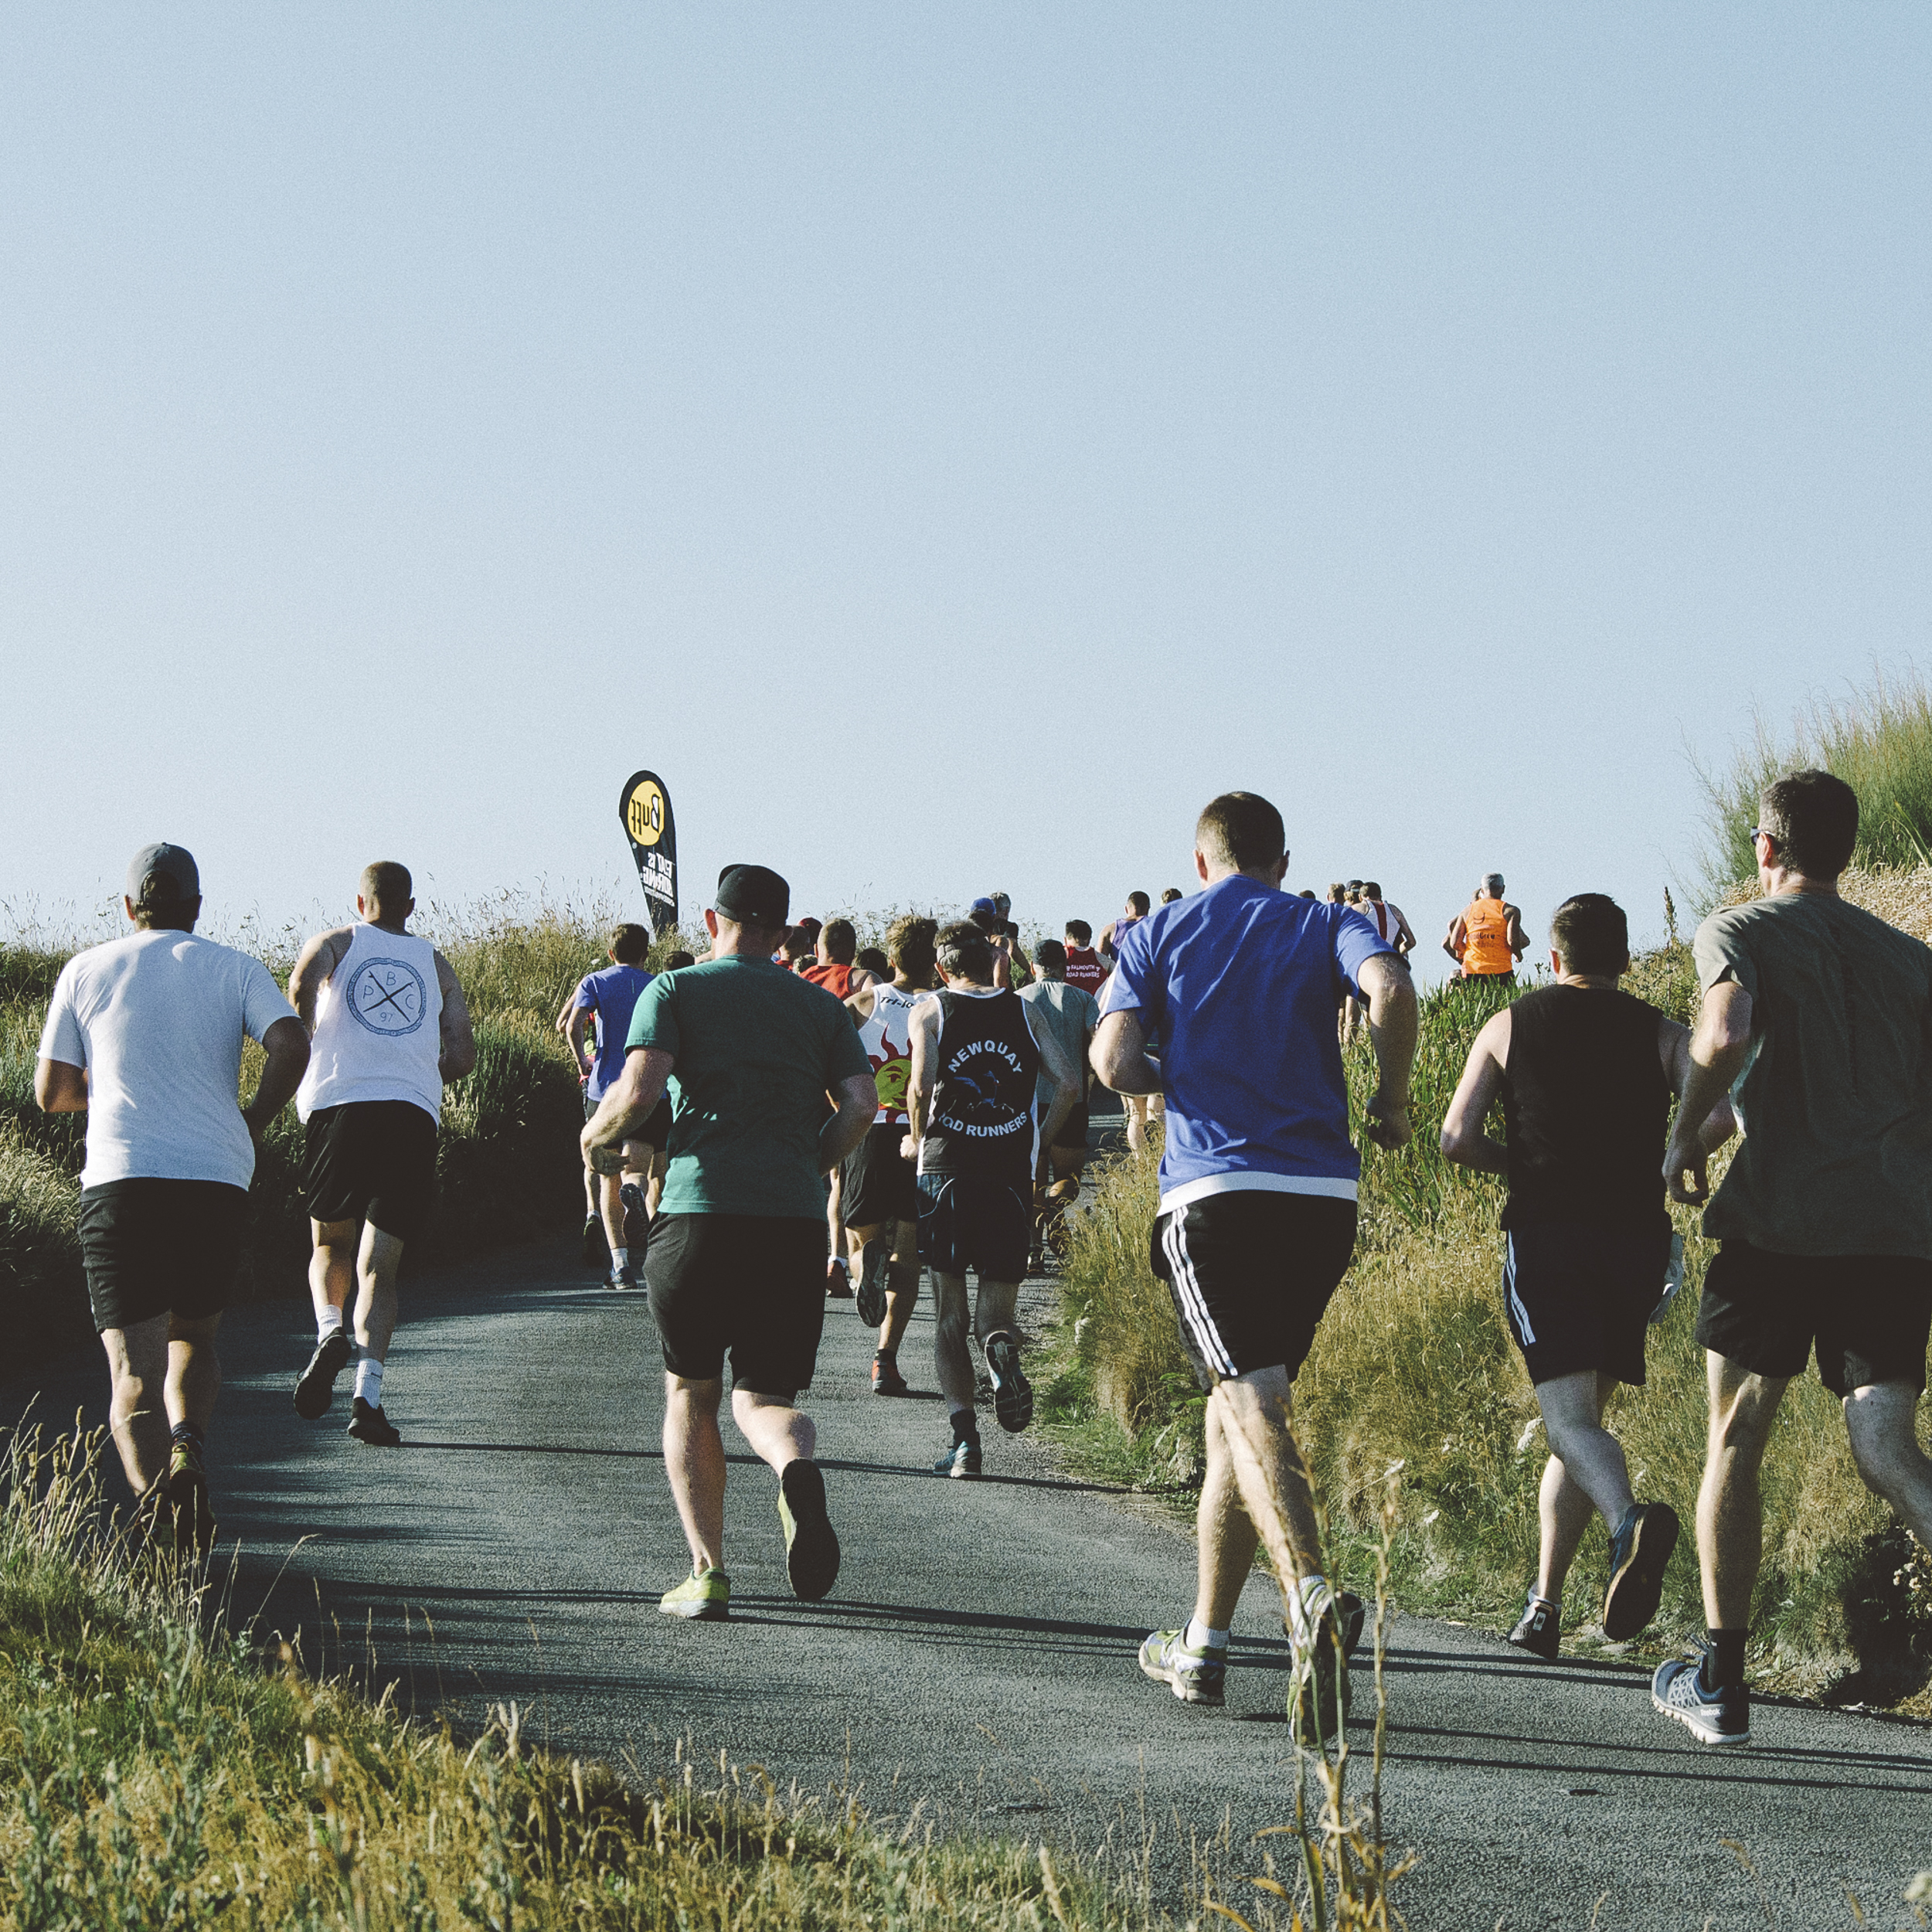 8 reasons why you should run - Here's a summary ways running can benefit you